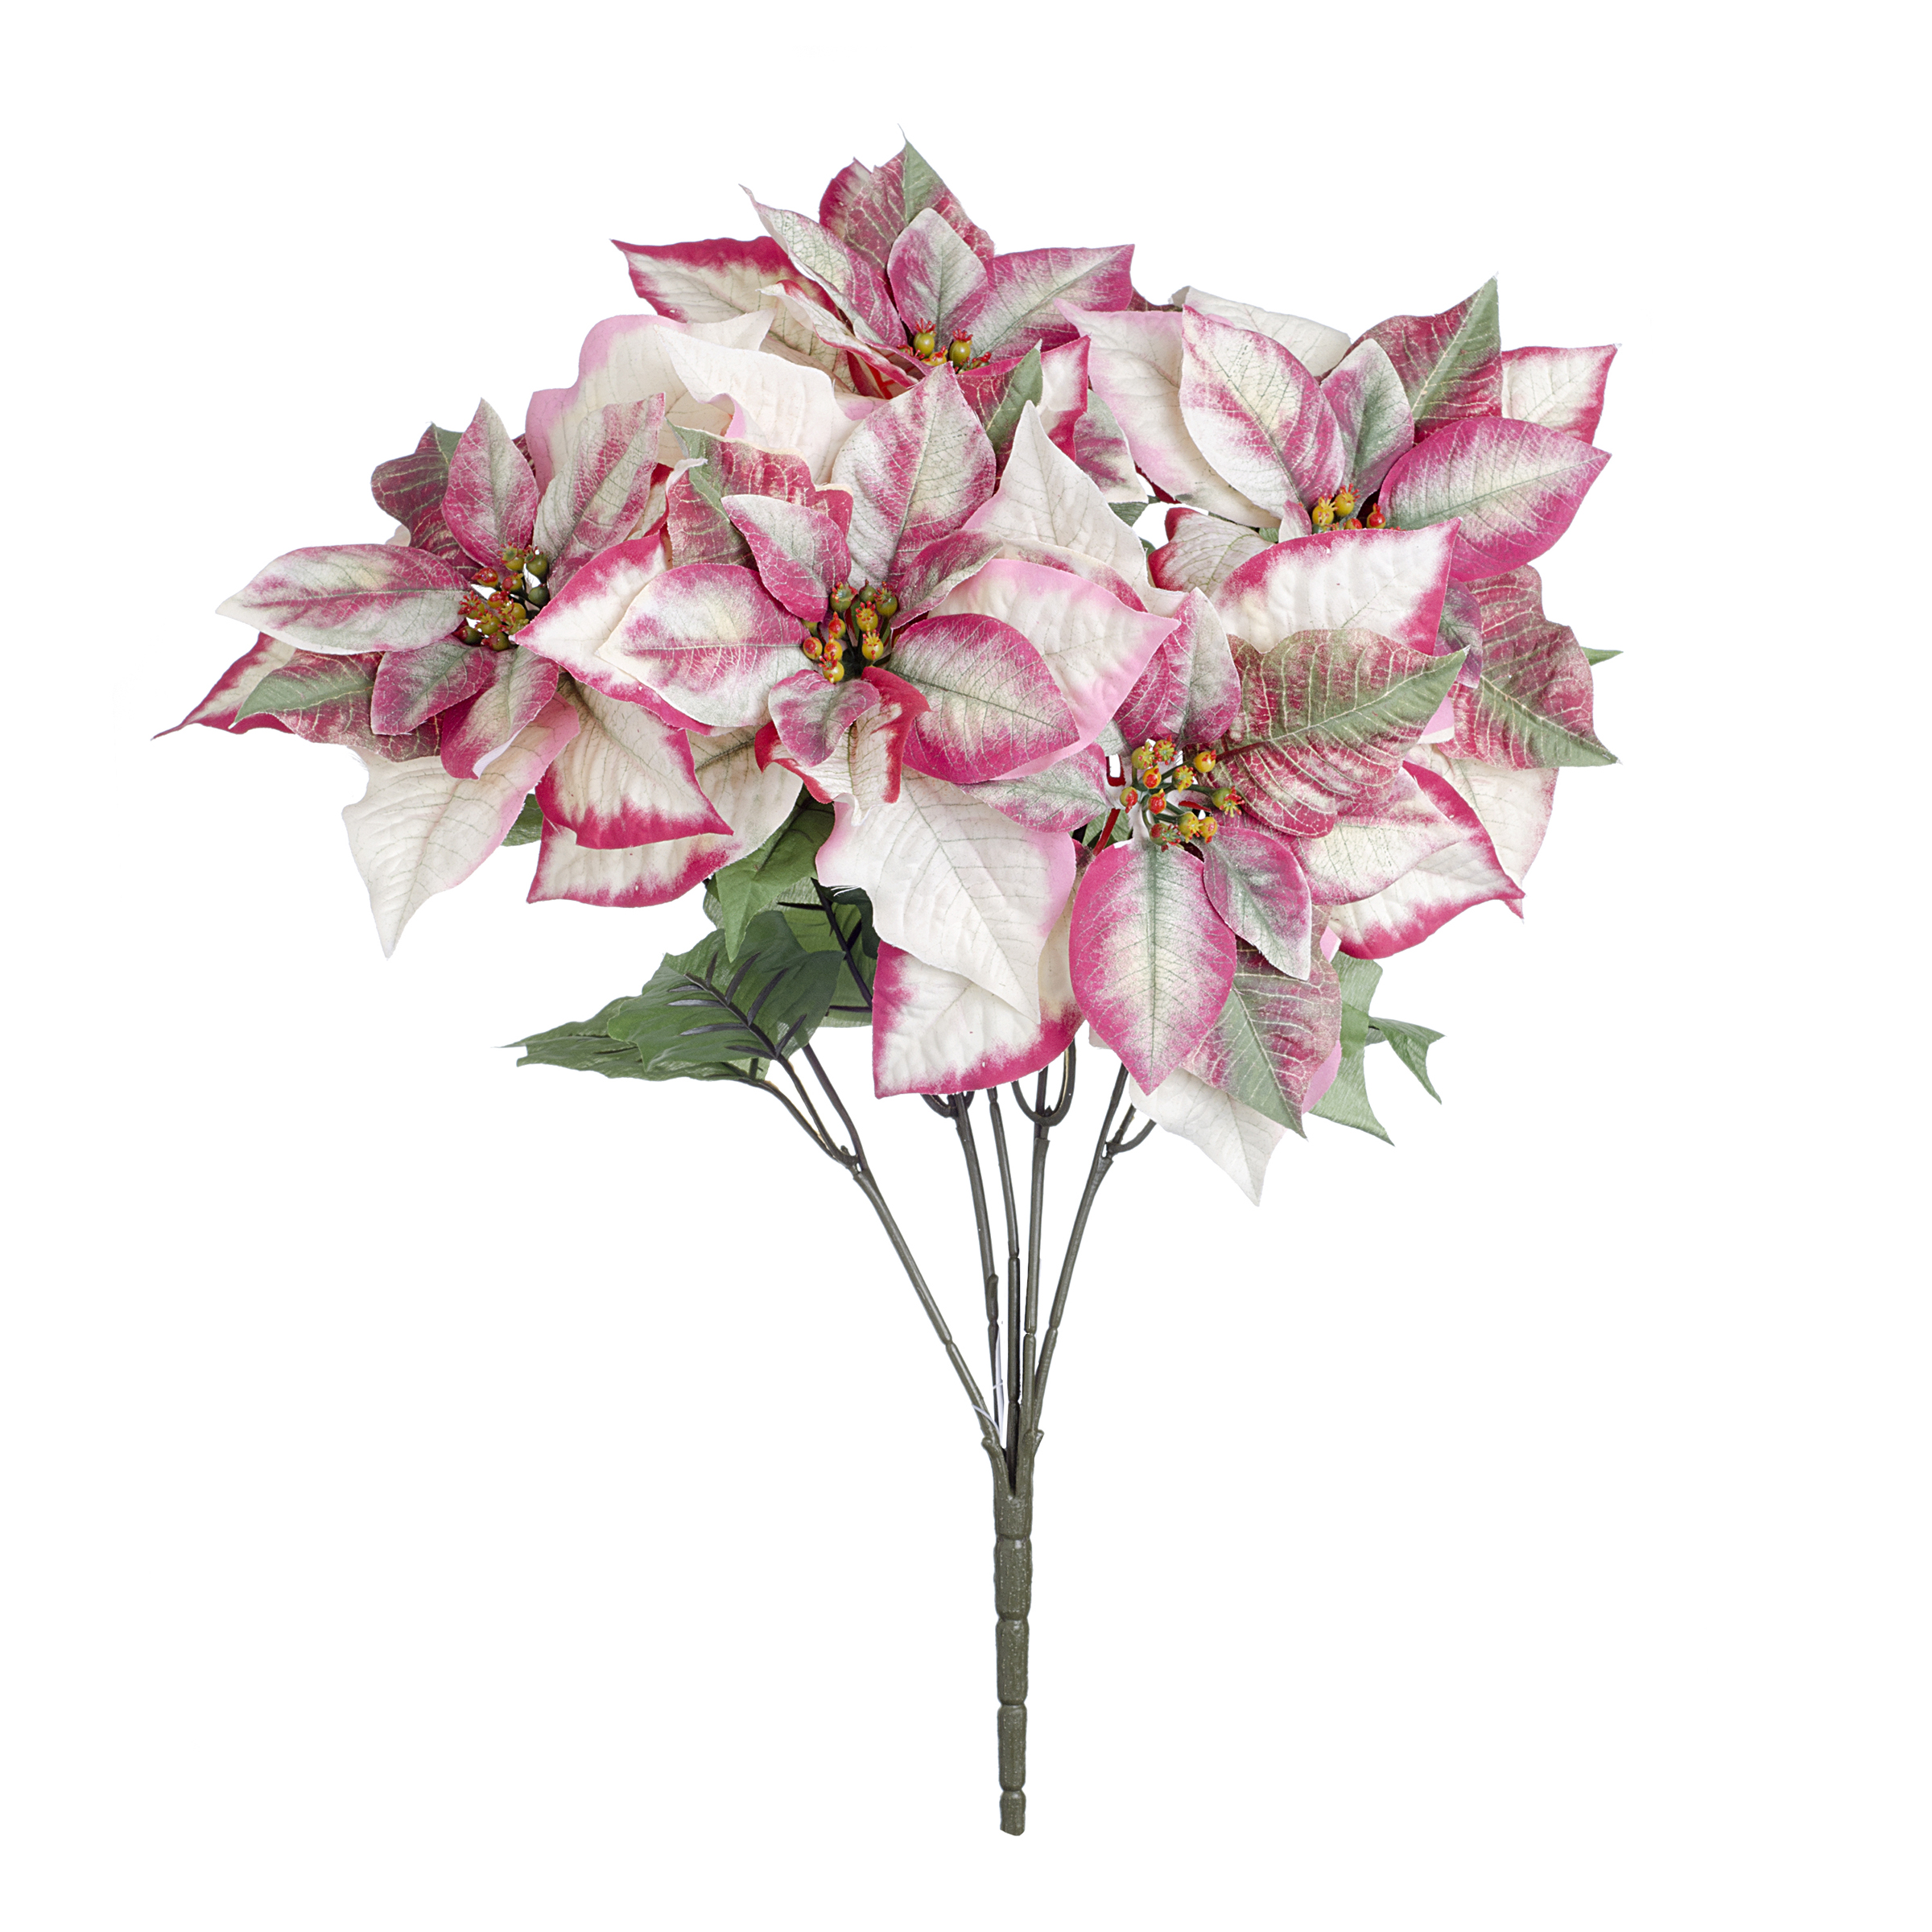 Poinsettia Decorative Bush White 4 X 19.5 Inches